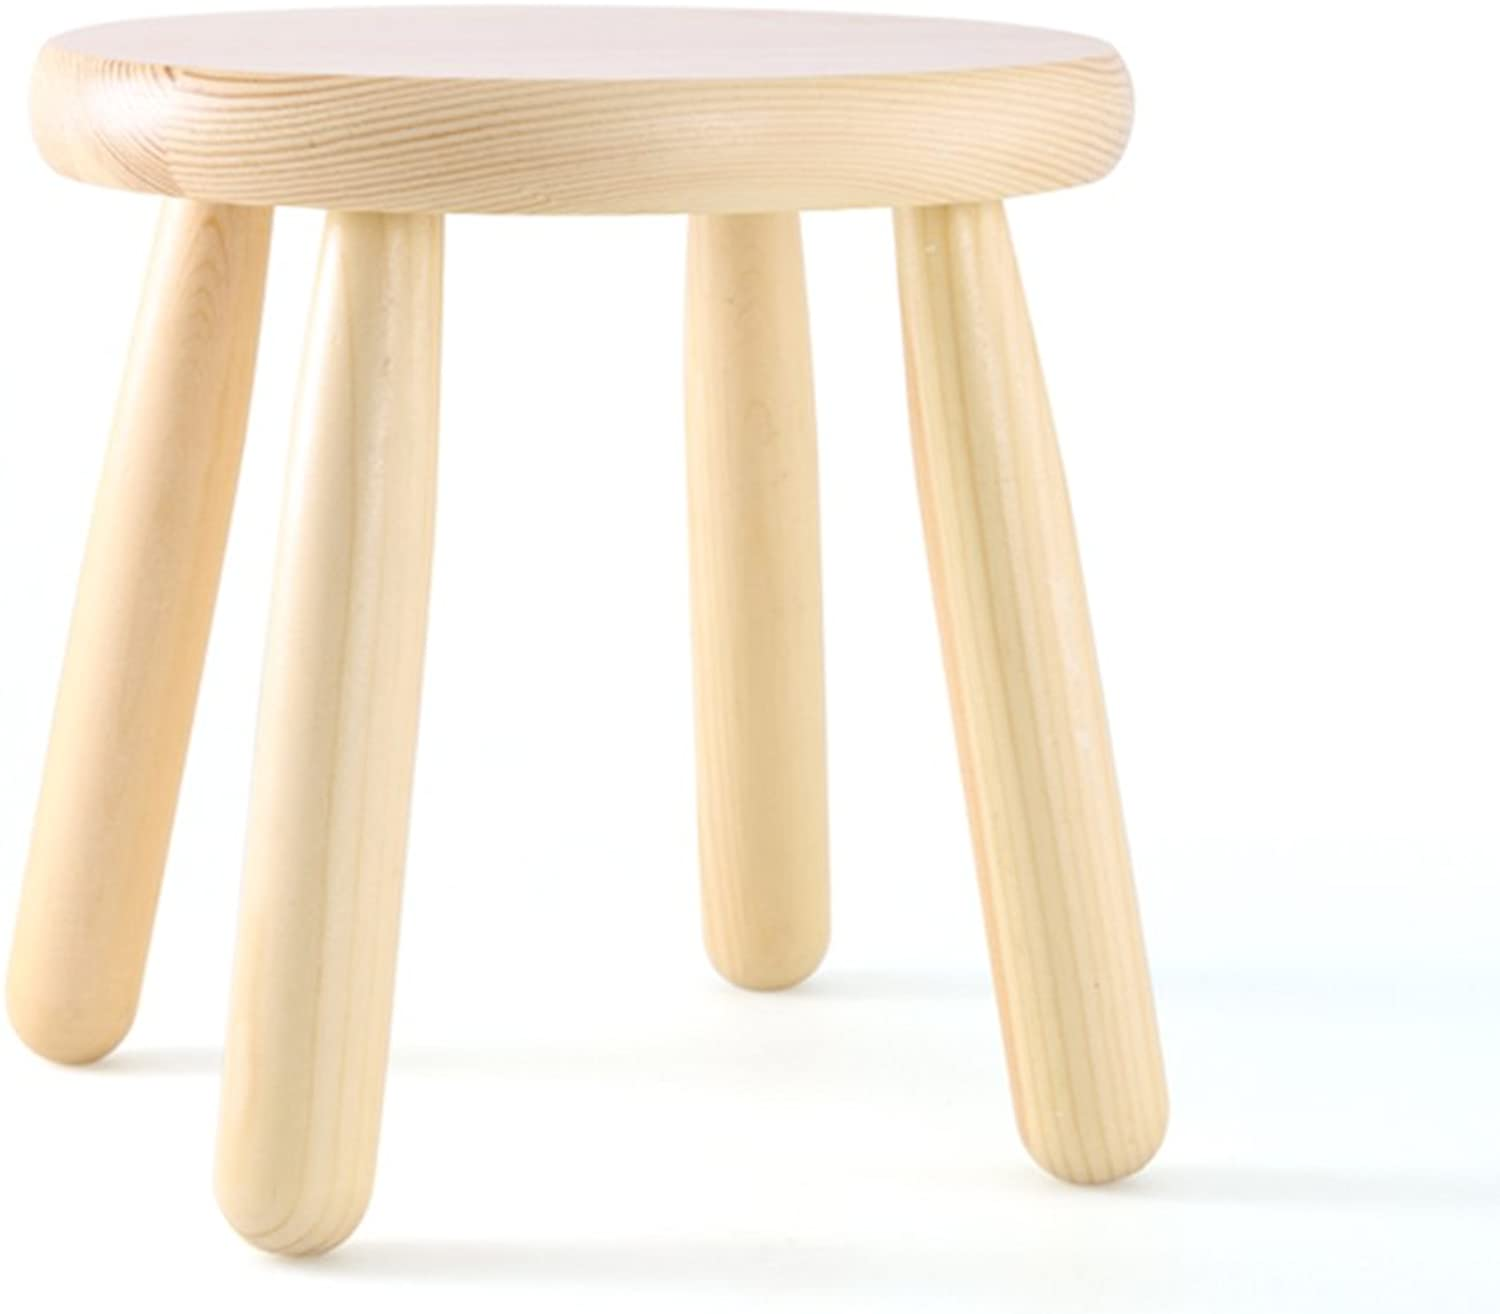 European Chair Solid Wood Stool, Change shoes Stool Practical Home Non-Slip sit Stool Low Stool Fashion Small Bench